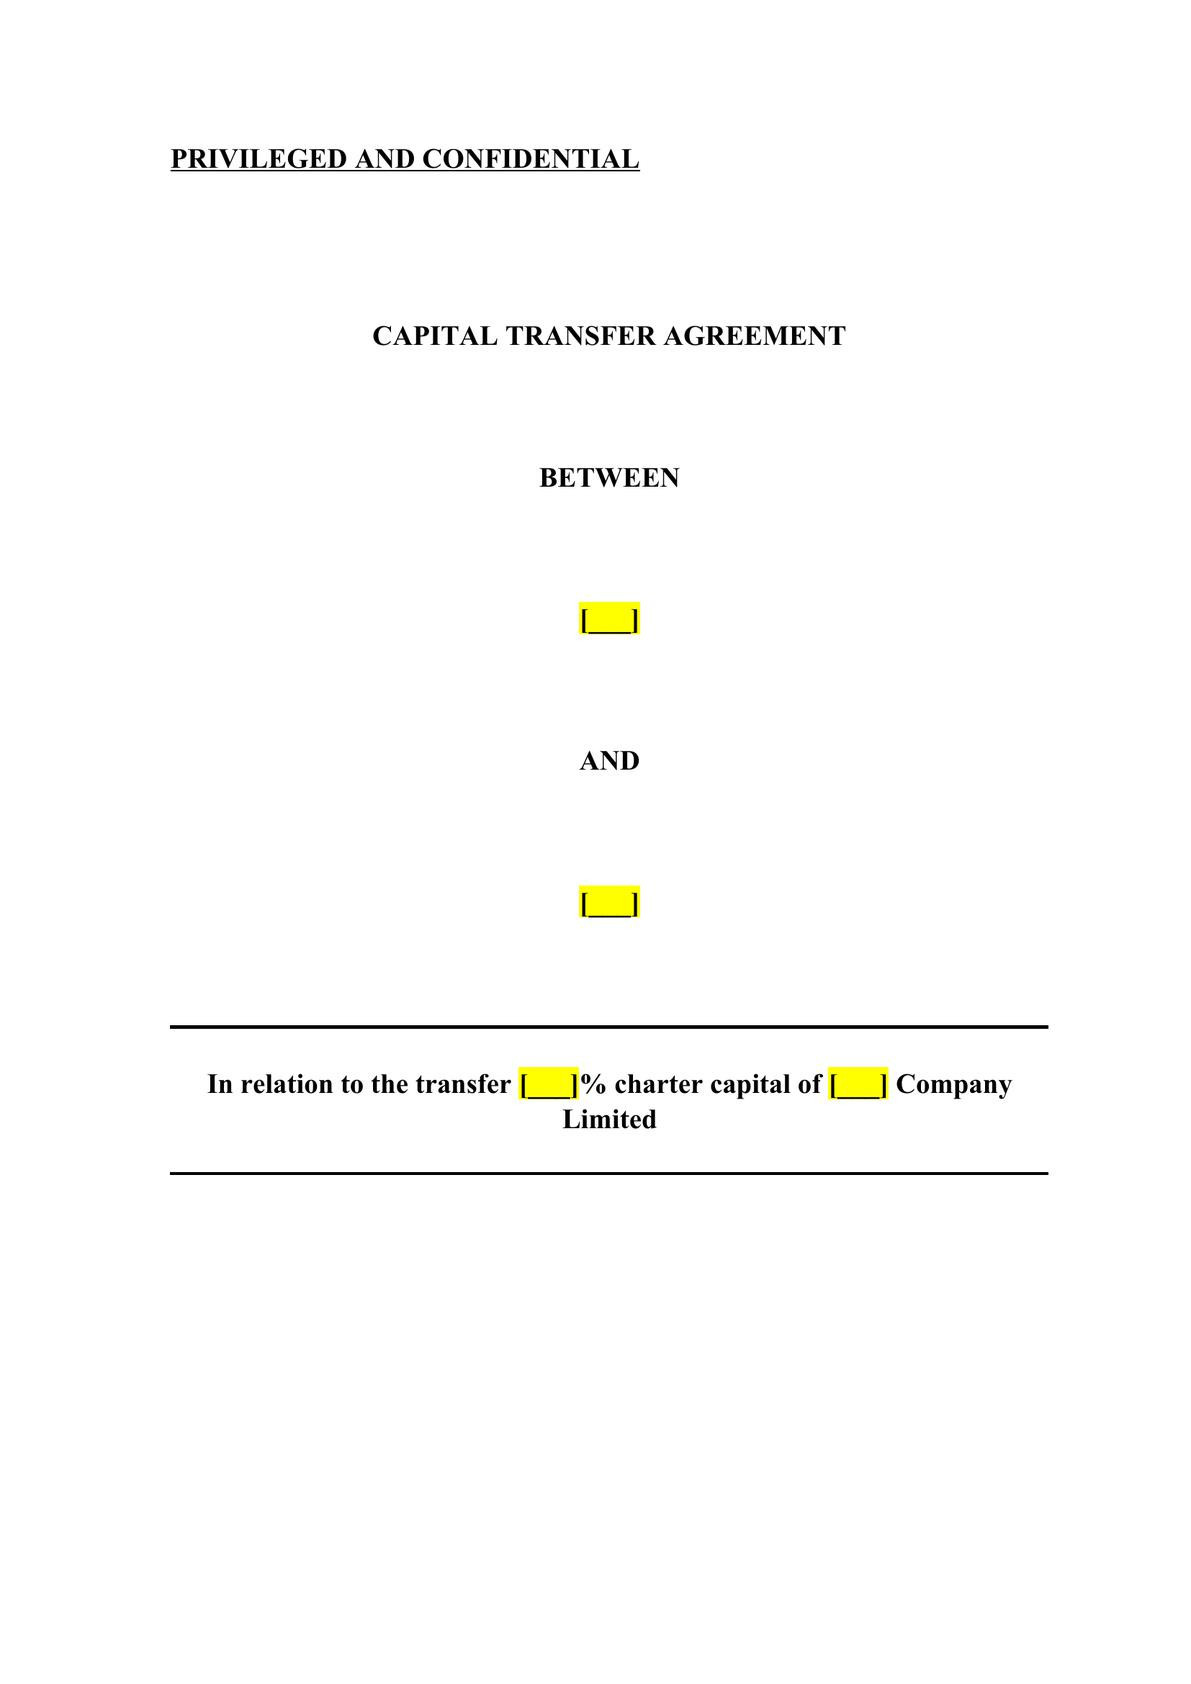 CAPITAL TRANSFER AGREEMENT -0